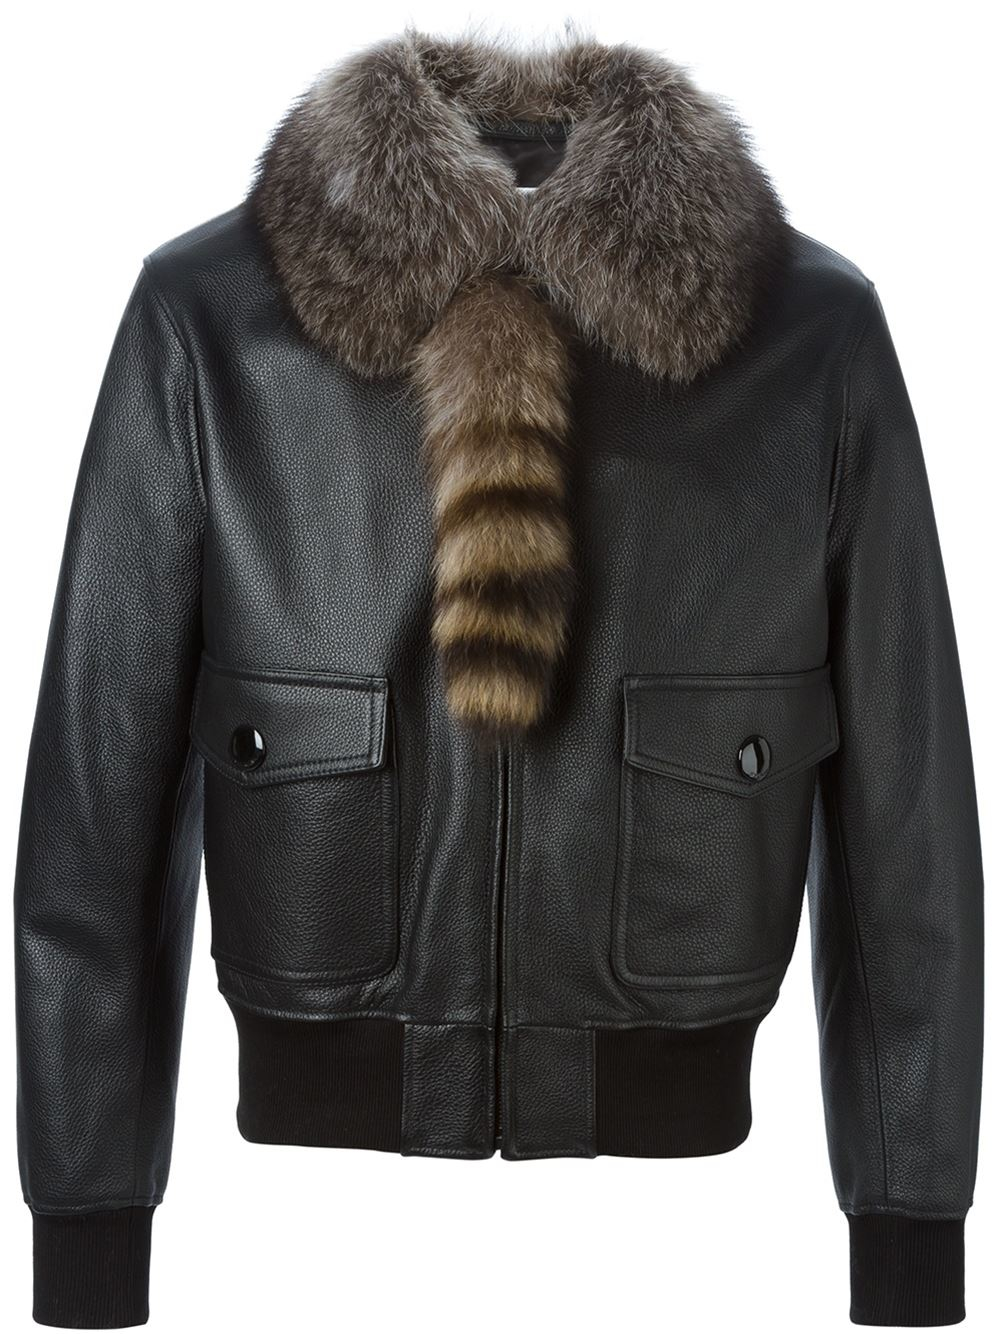 Lyst  Givenchy Raccoon Fur Collar Jacket in Black for Men